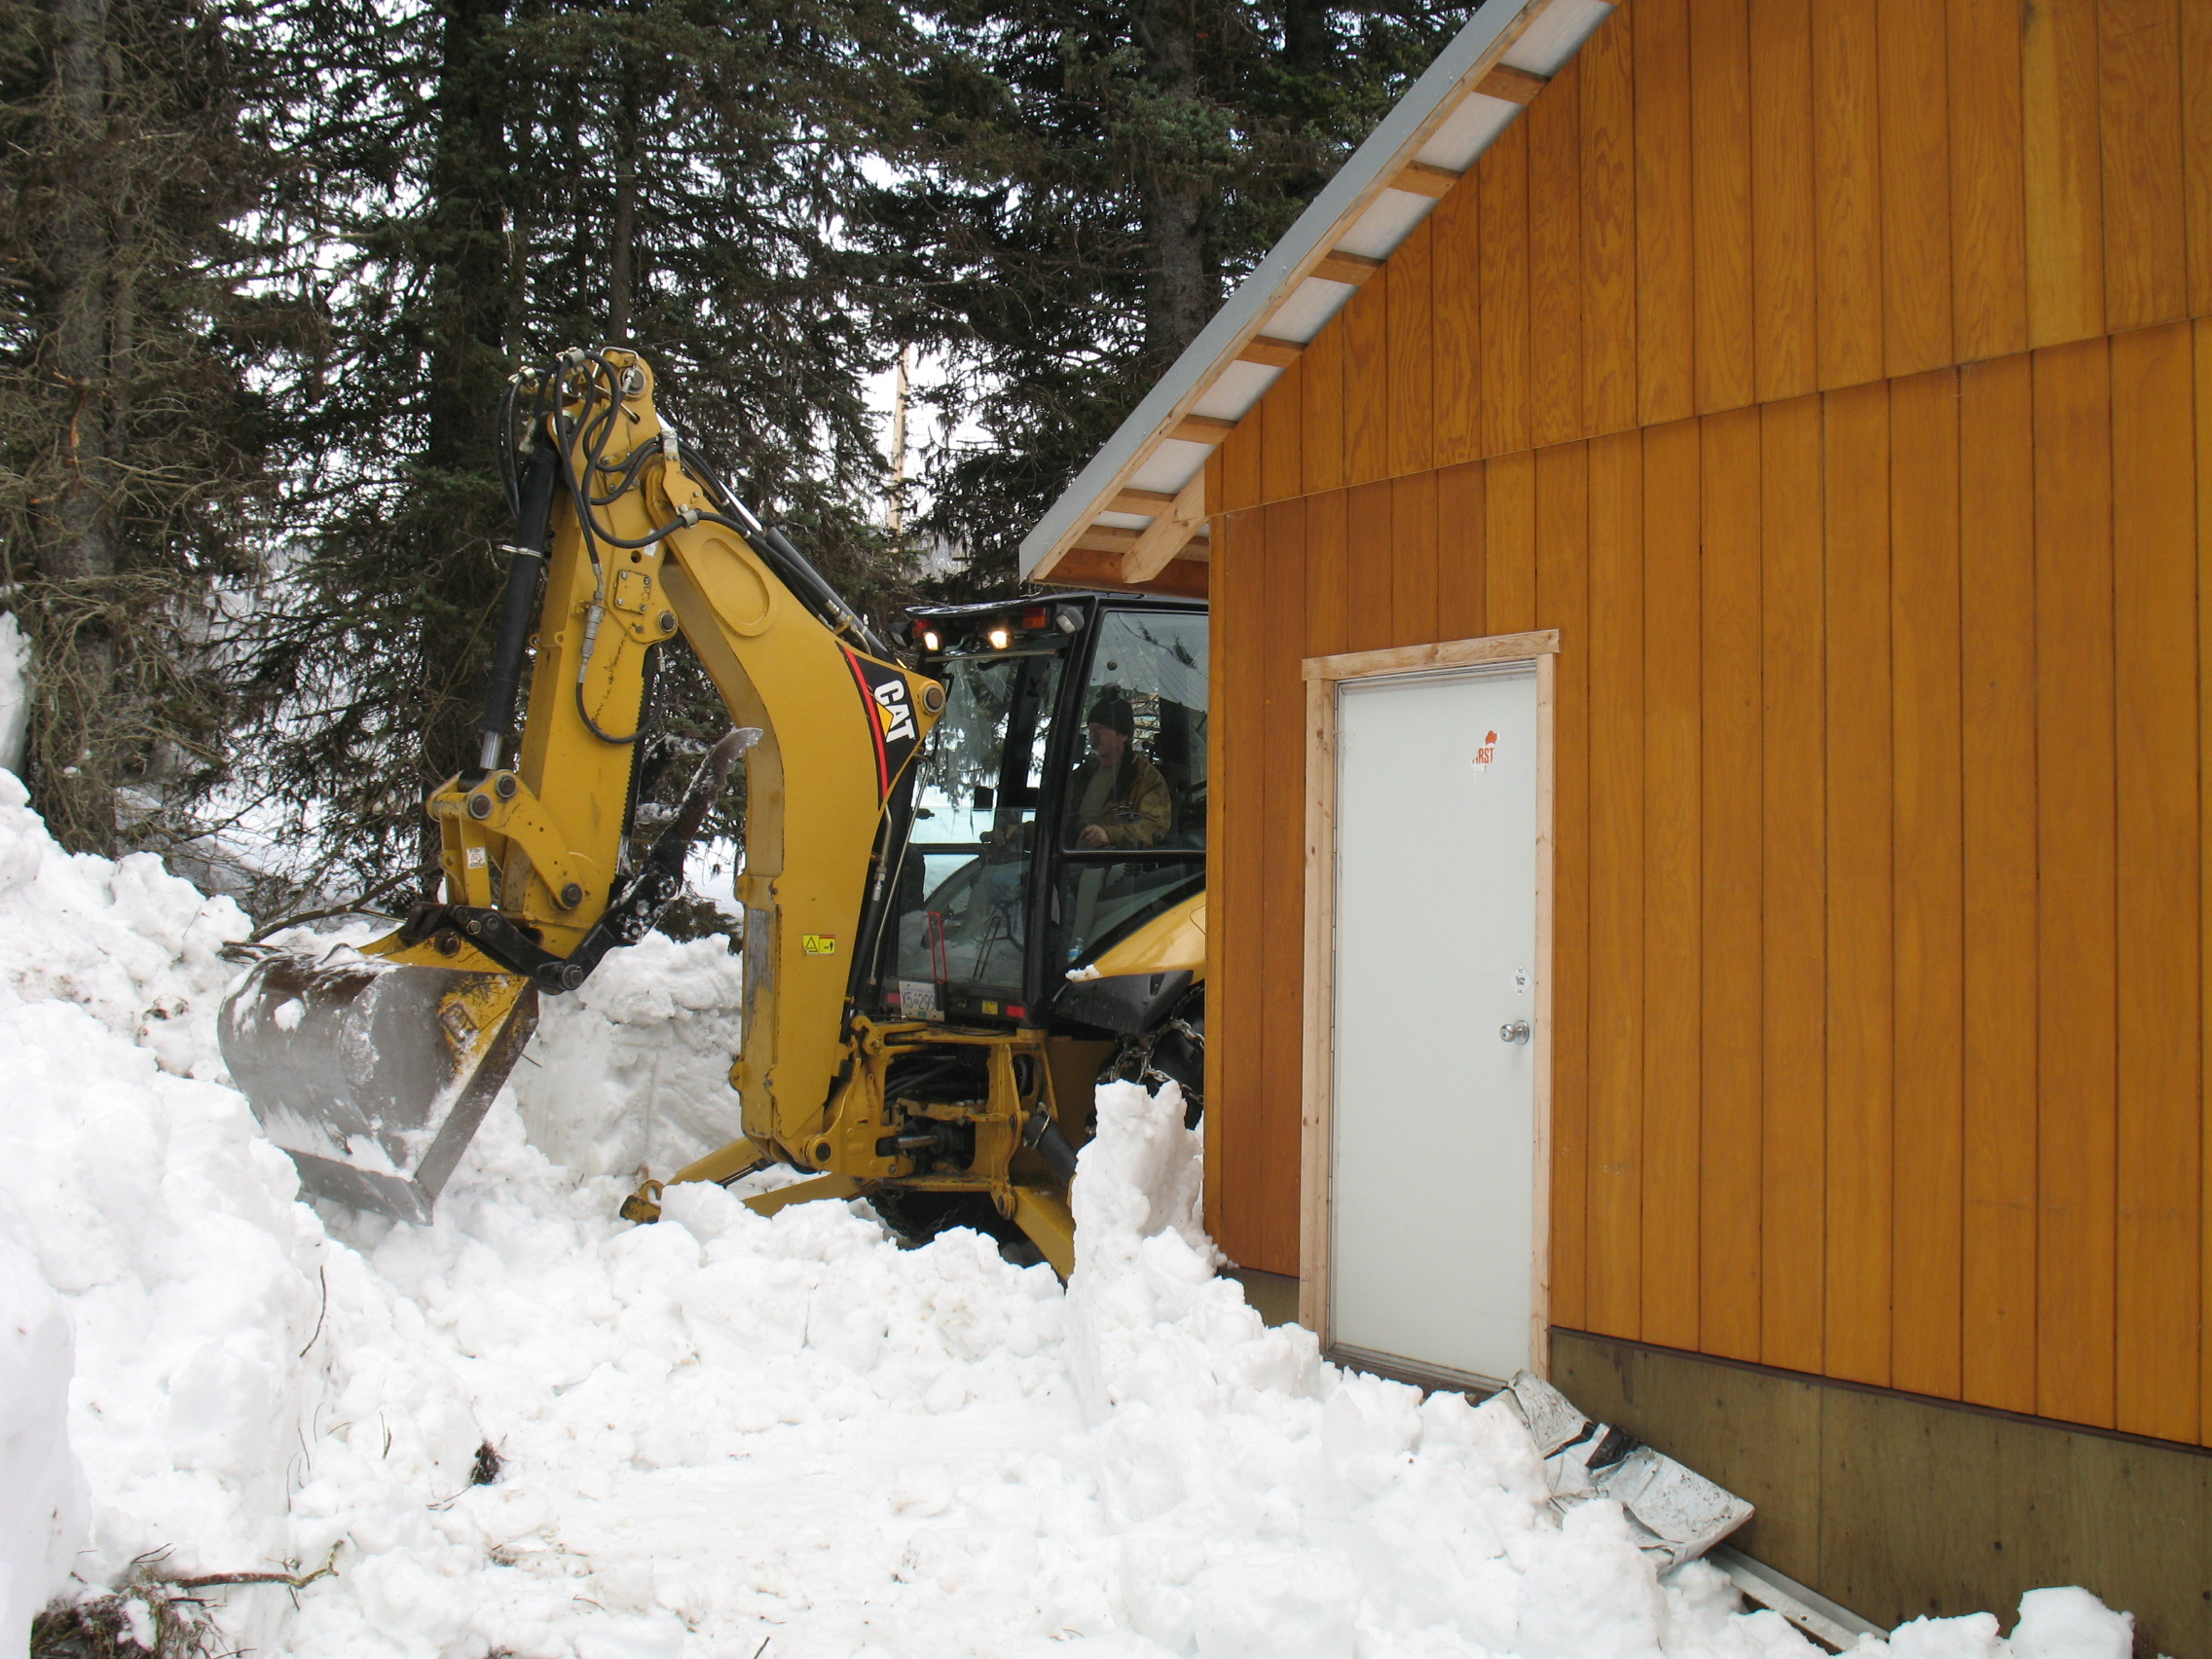 Finally getting around to the back of the building - we will store firewood outside this back door.